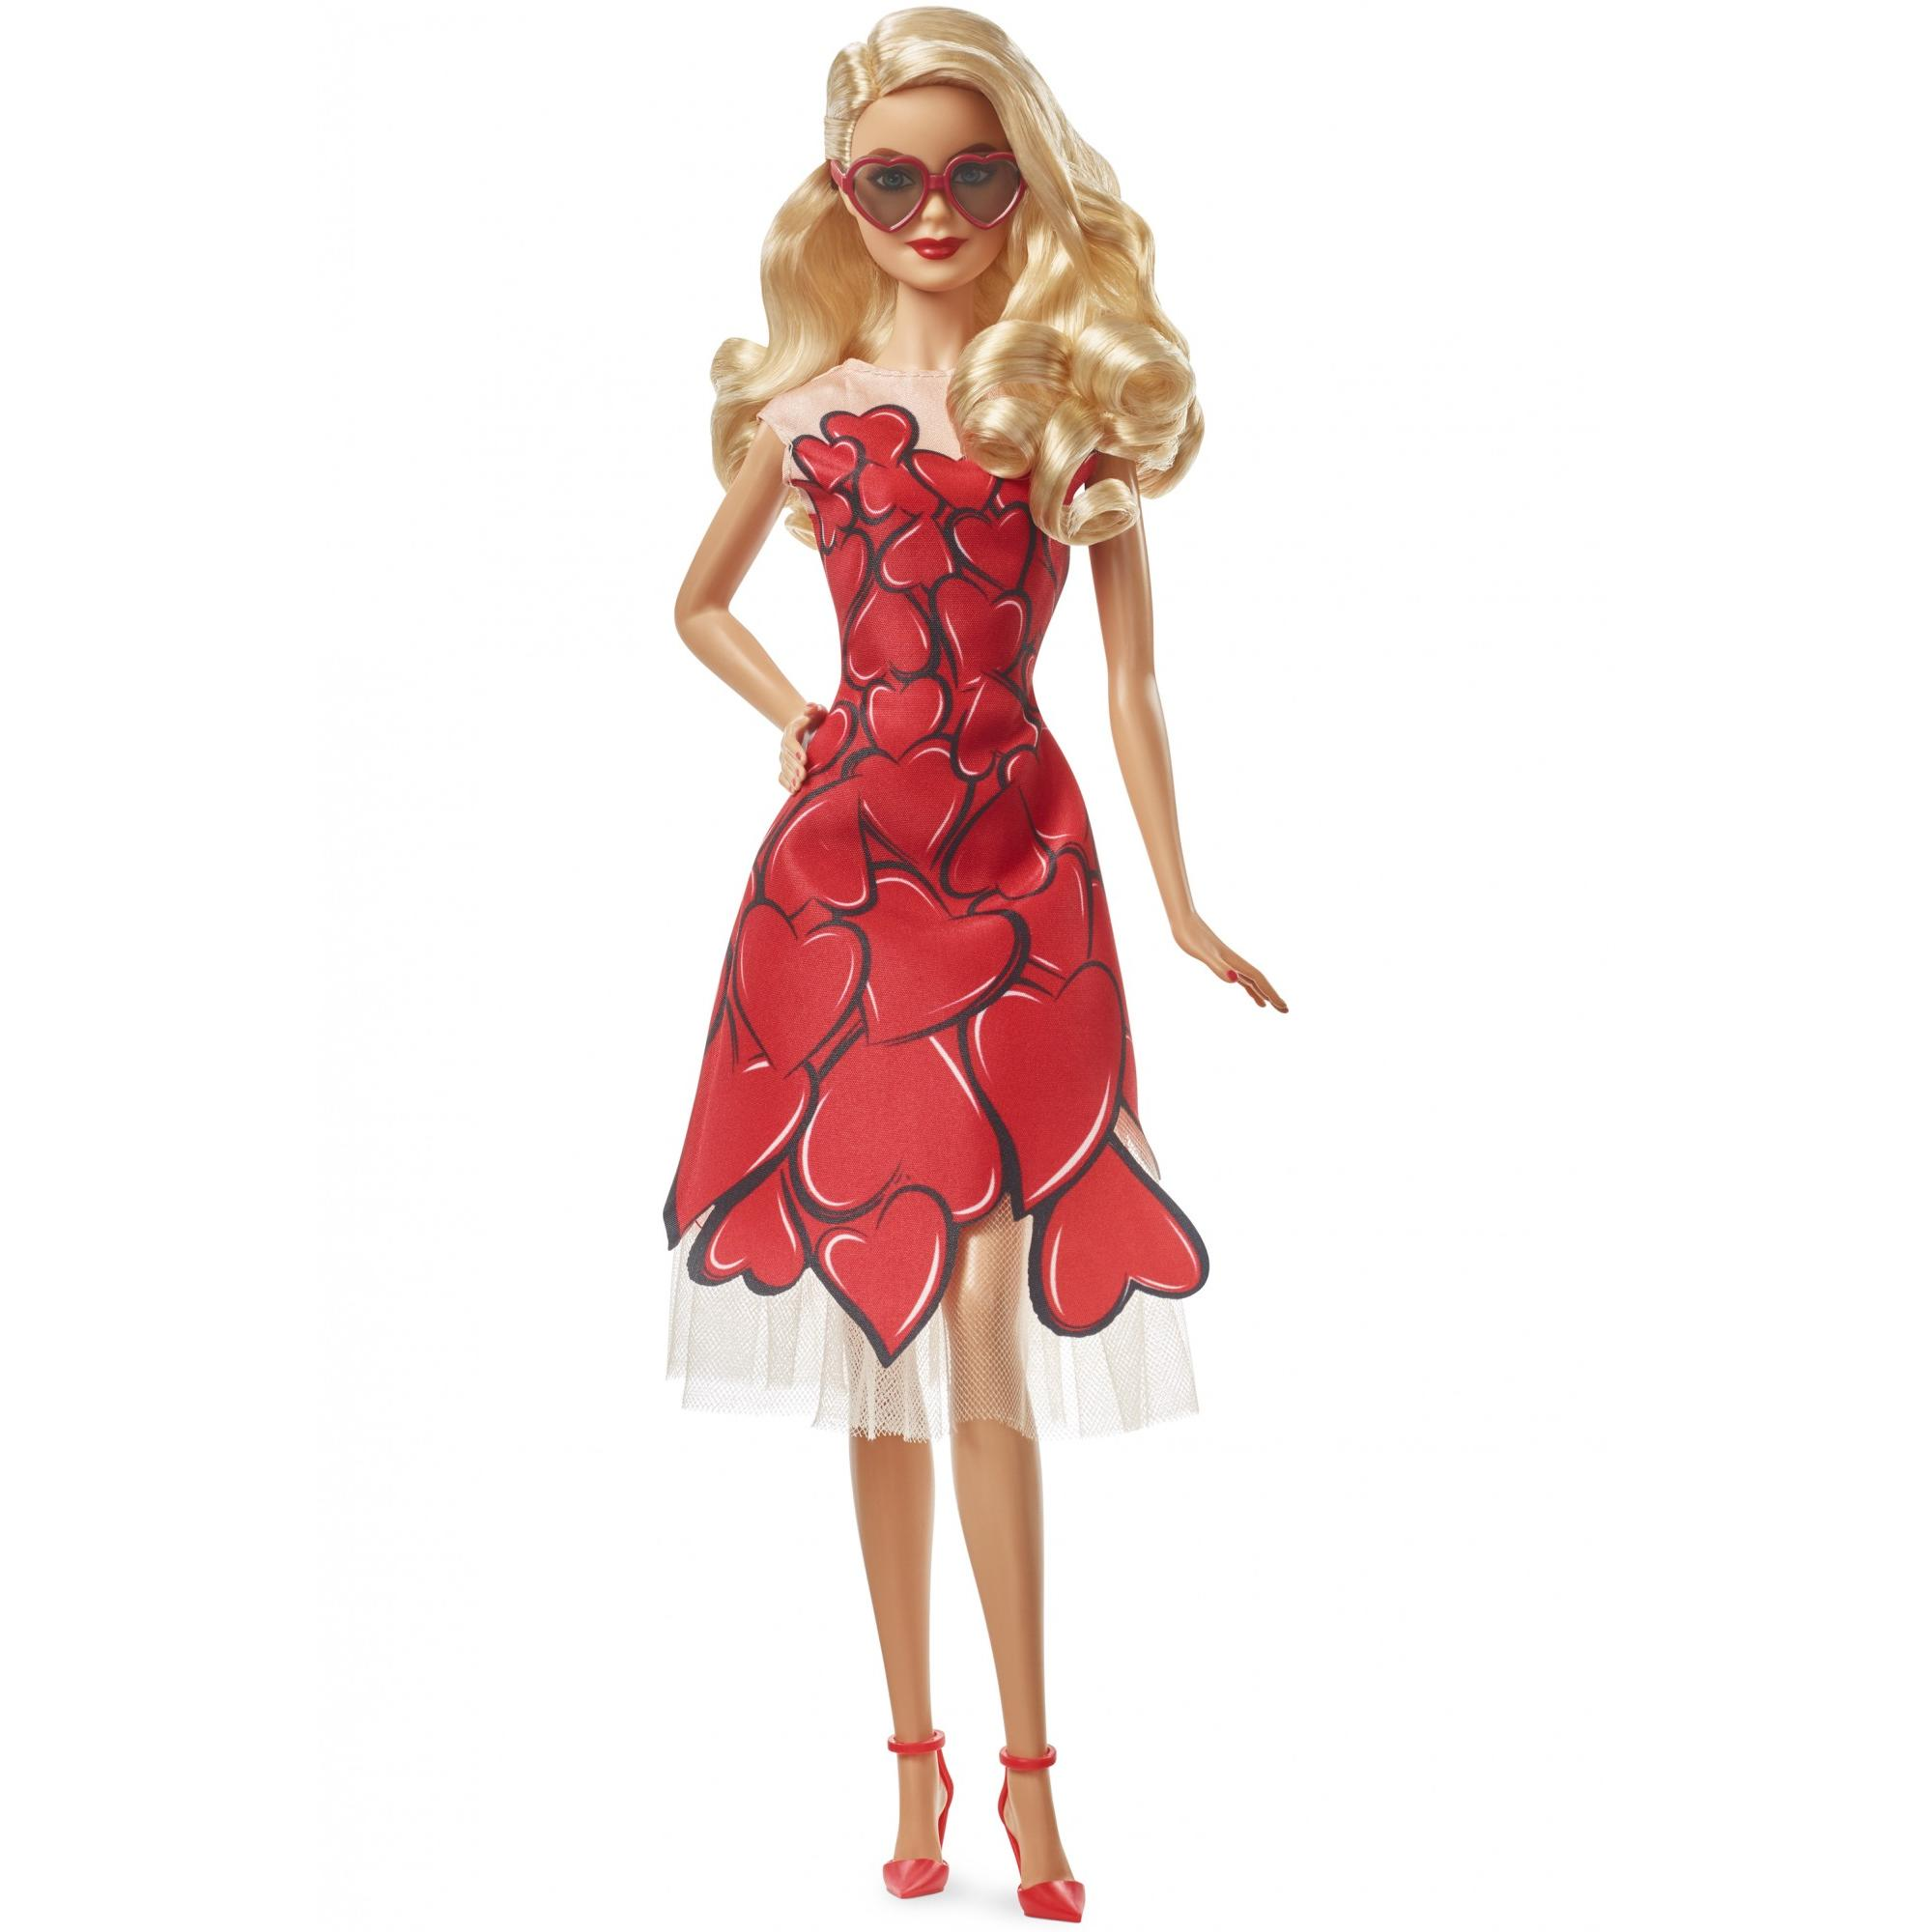 Barbie Celebratory Collectible Doll with Heart Dress & Sunglasses